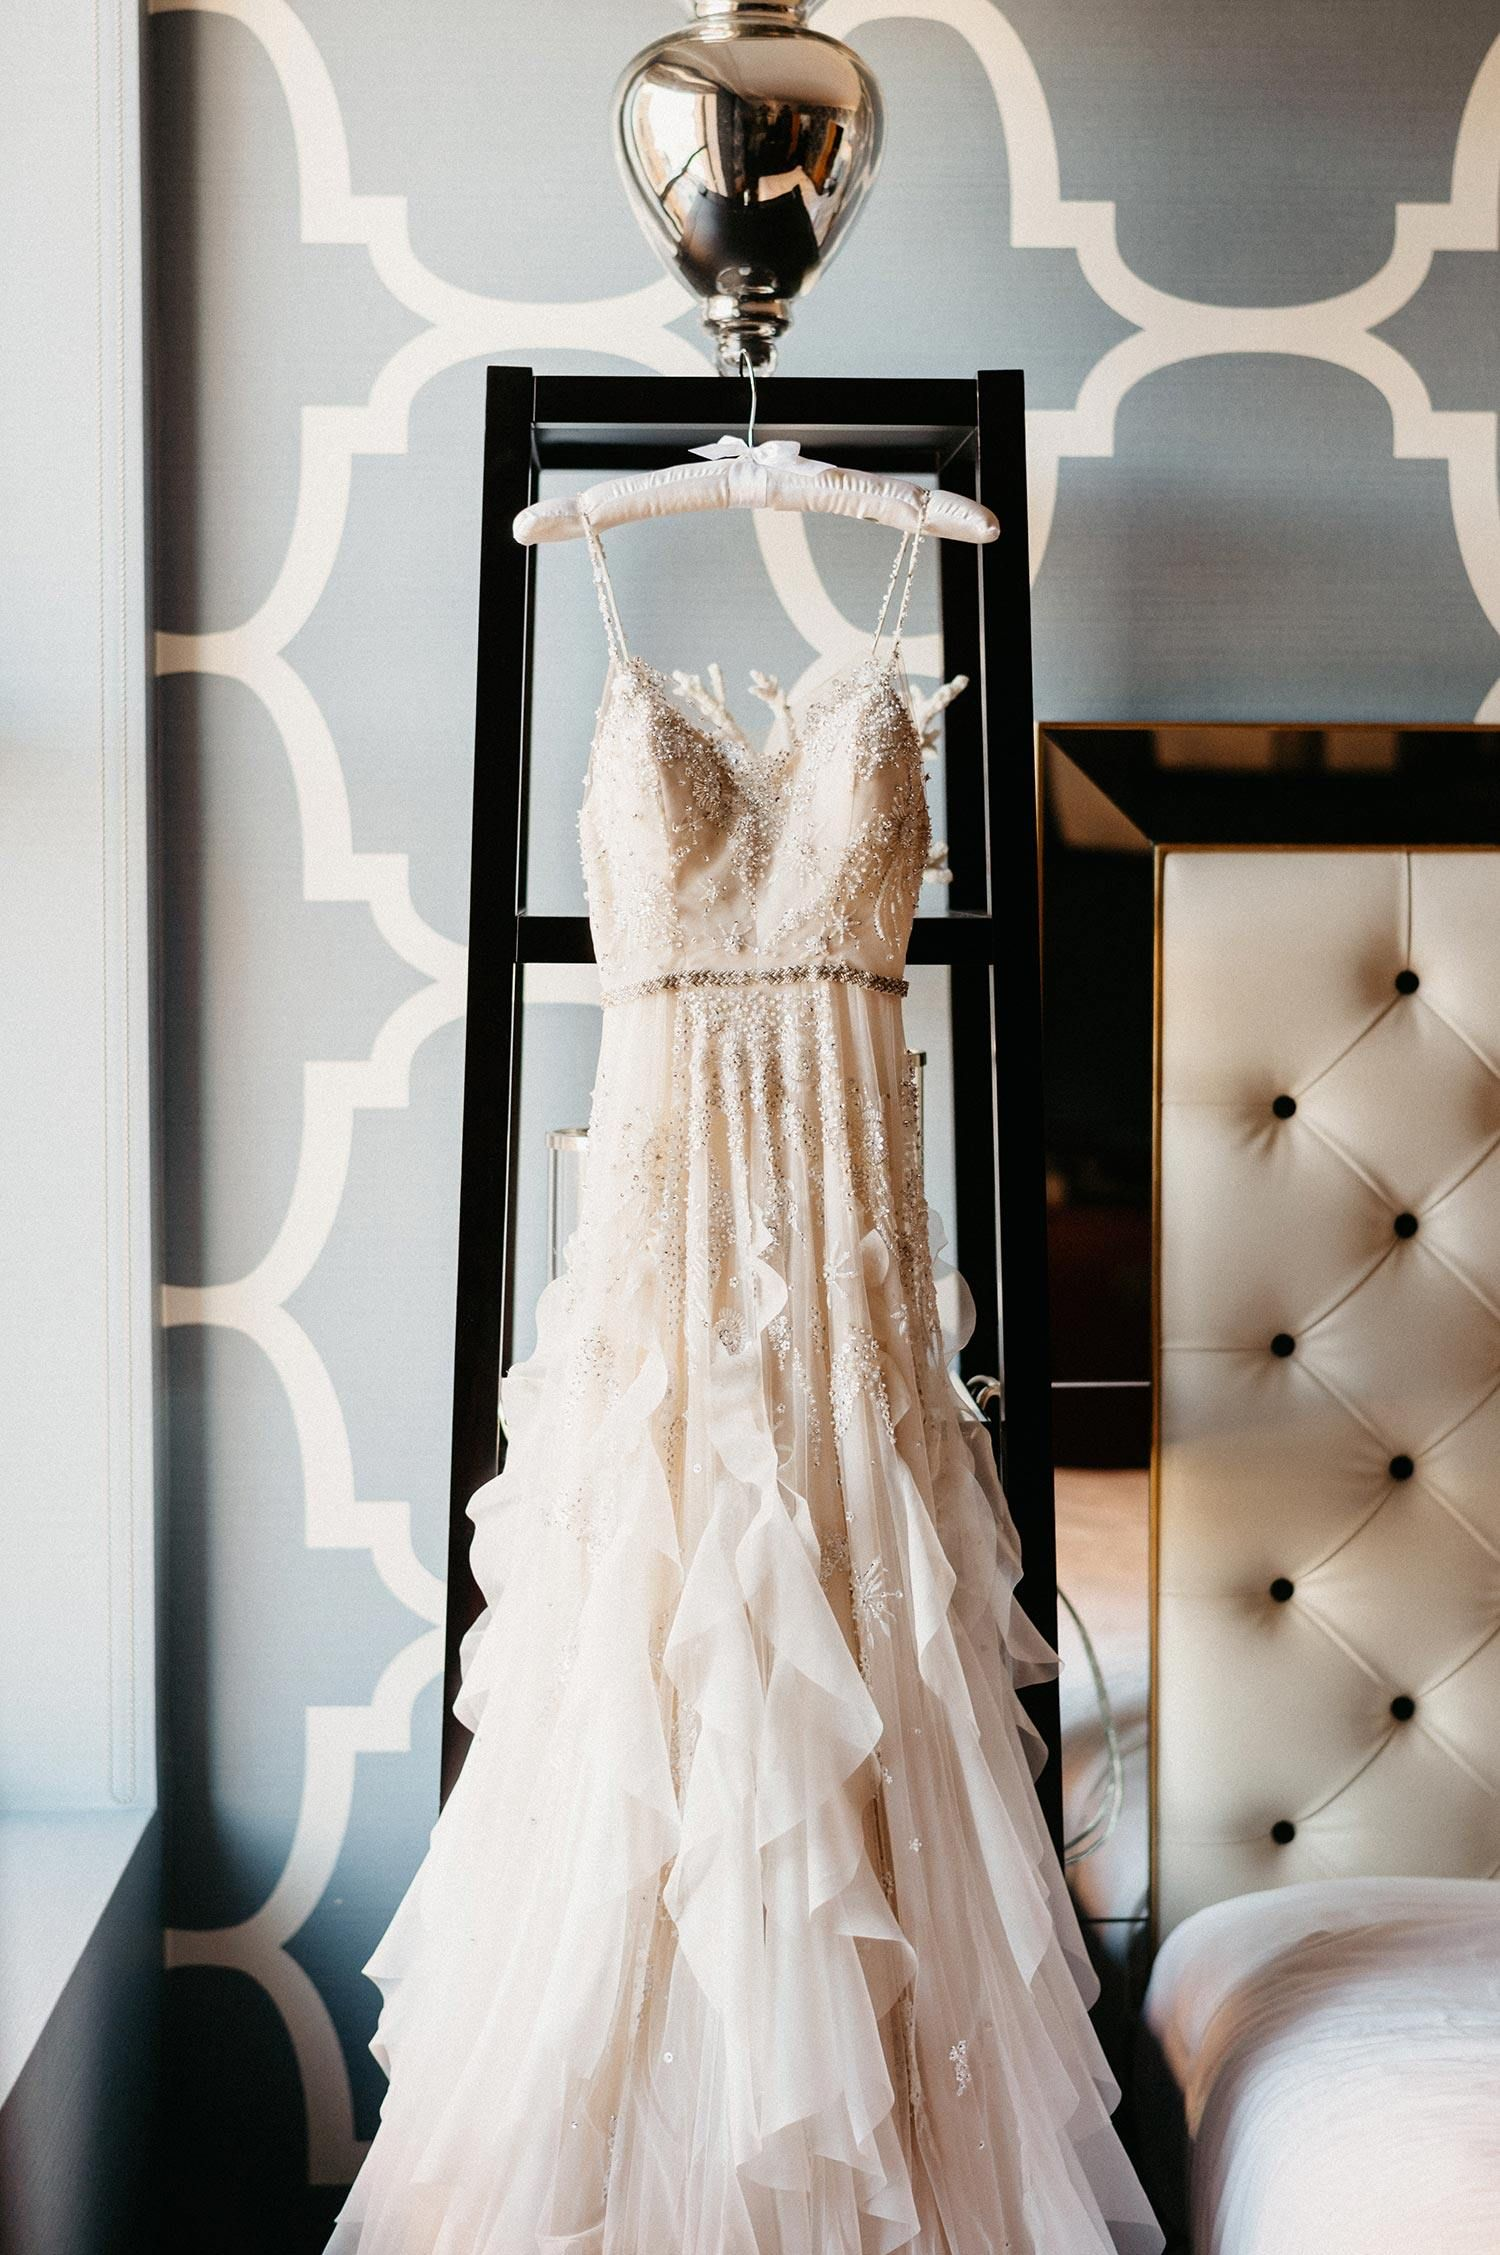 Moody College Of Physicians Wedding With Apothecary Accents Country Wedding Dresses Dreamy Wedding Dress Wedding Dresses Romantic [ 2255 x 1500 Pixel ]